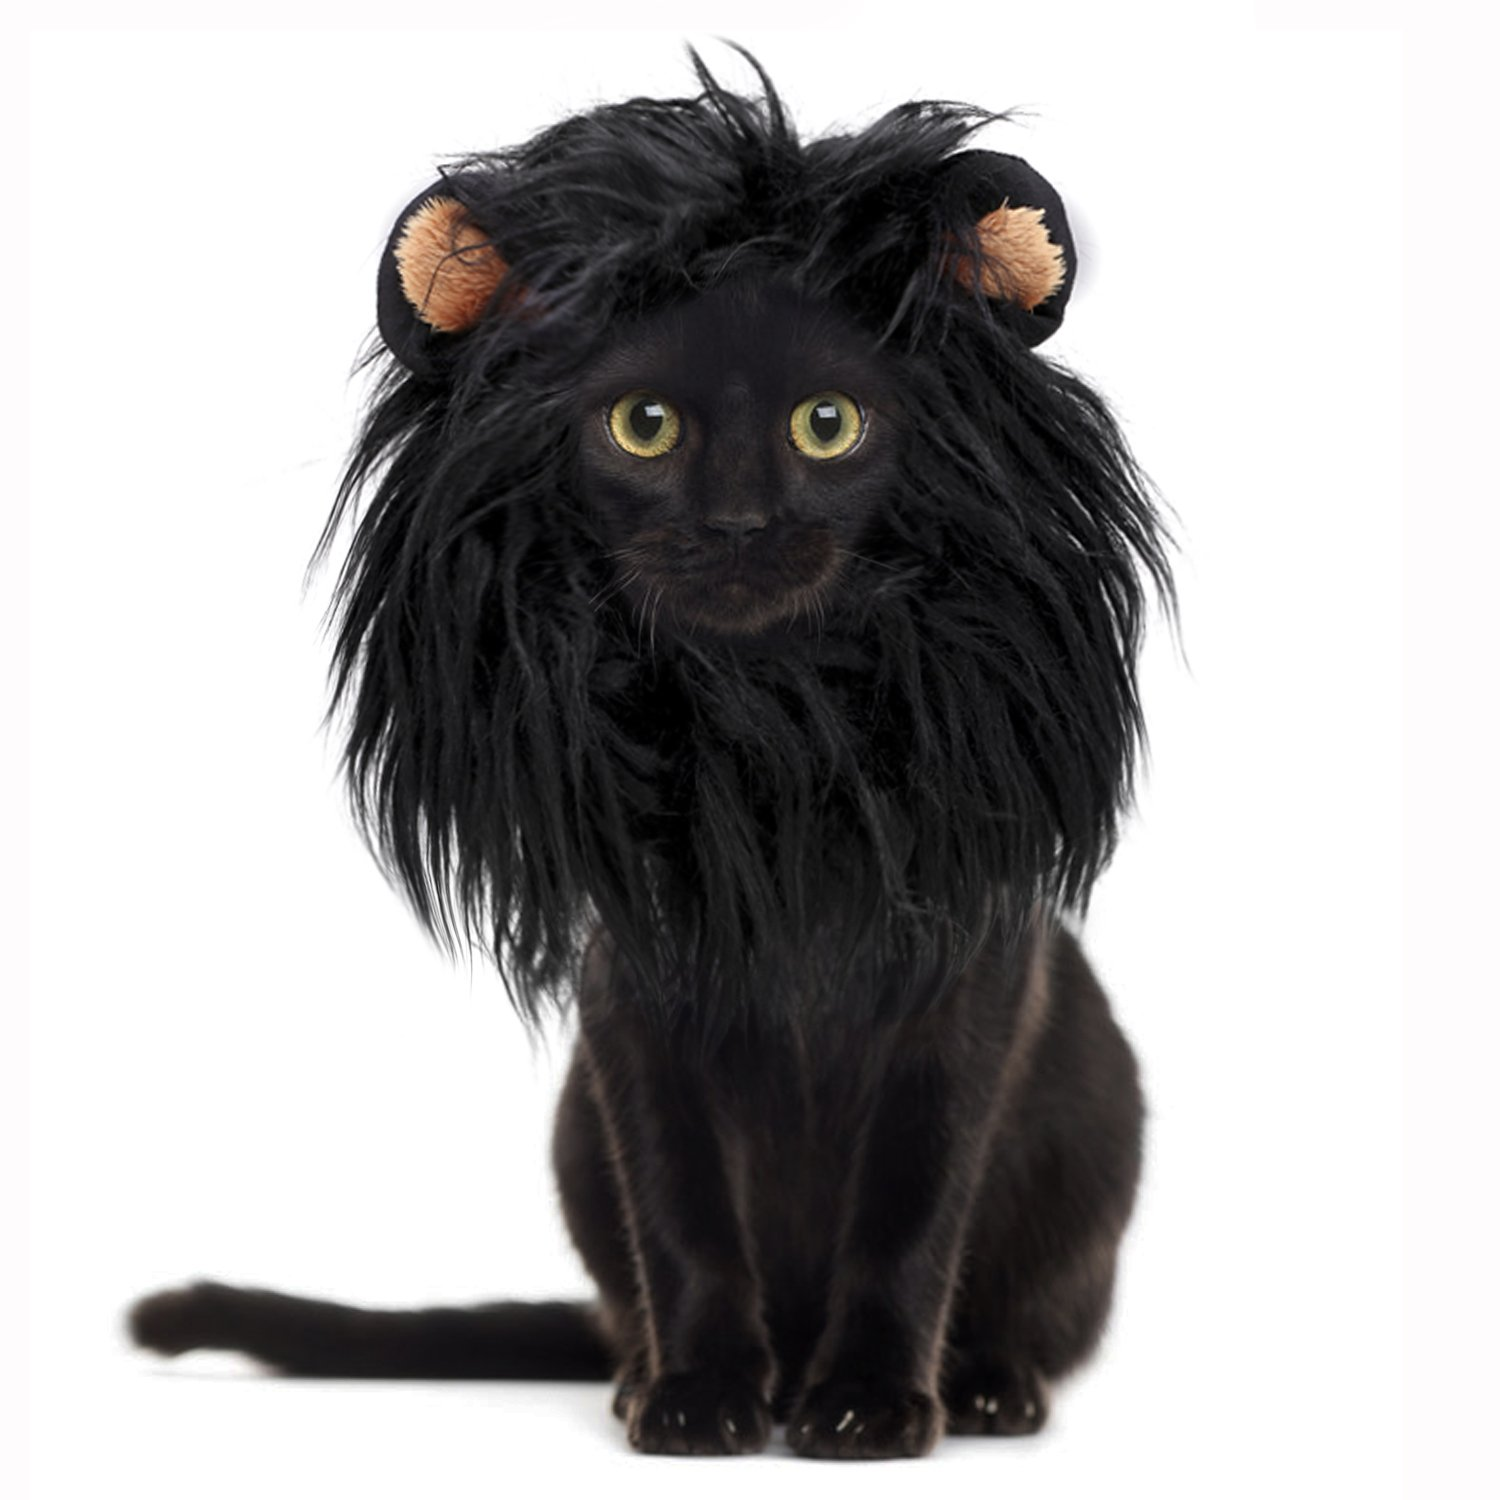 Onmygogo Lion Mane Wig for Cats with Ears, Funny Pet Cat Costumes for Halloween Christmas (S, Melange Brown) Shop onmygogo